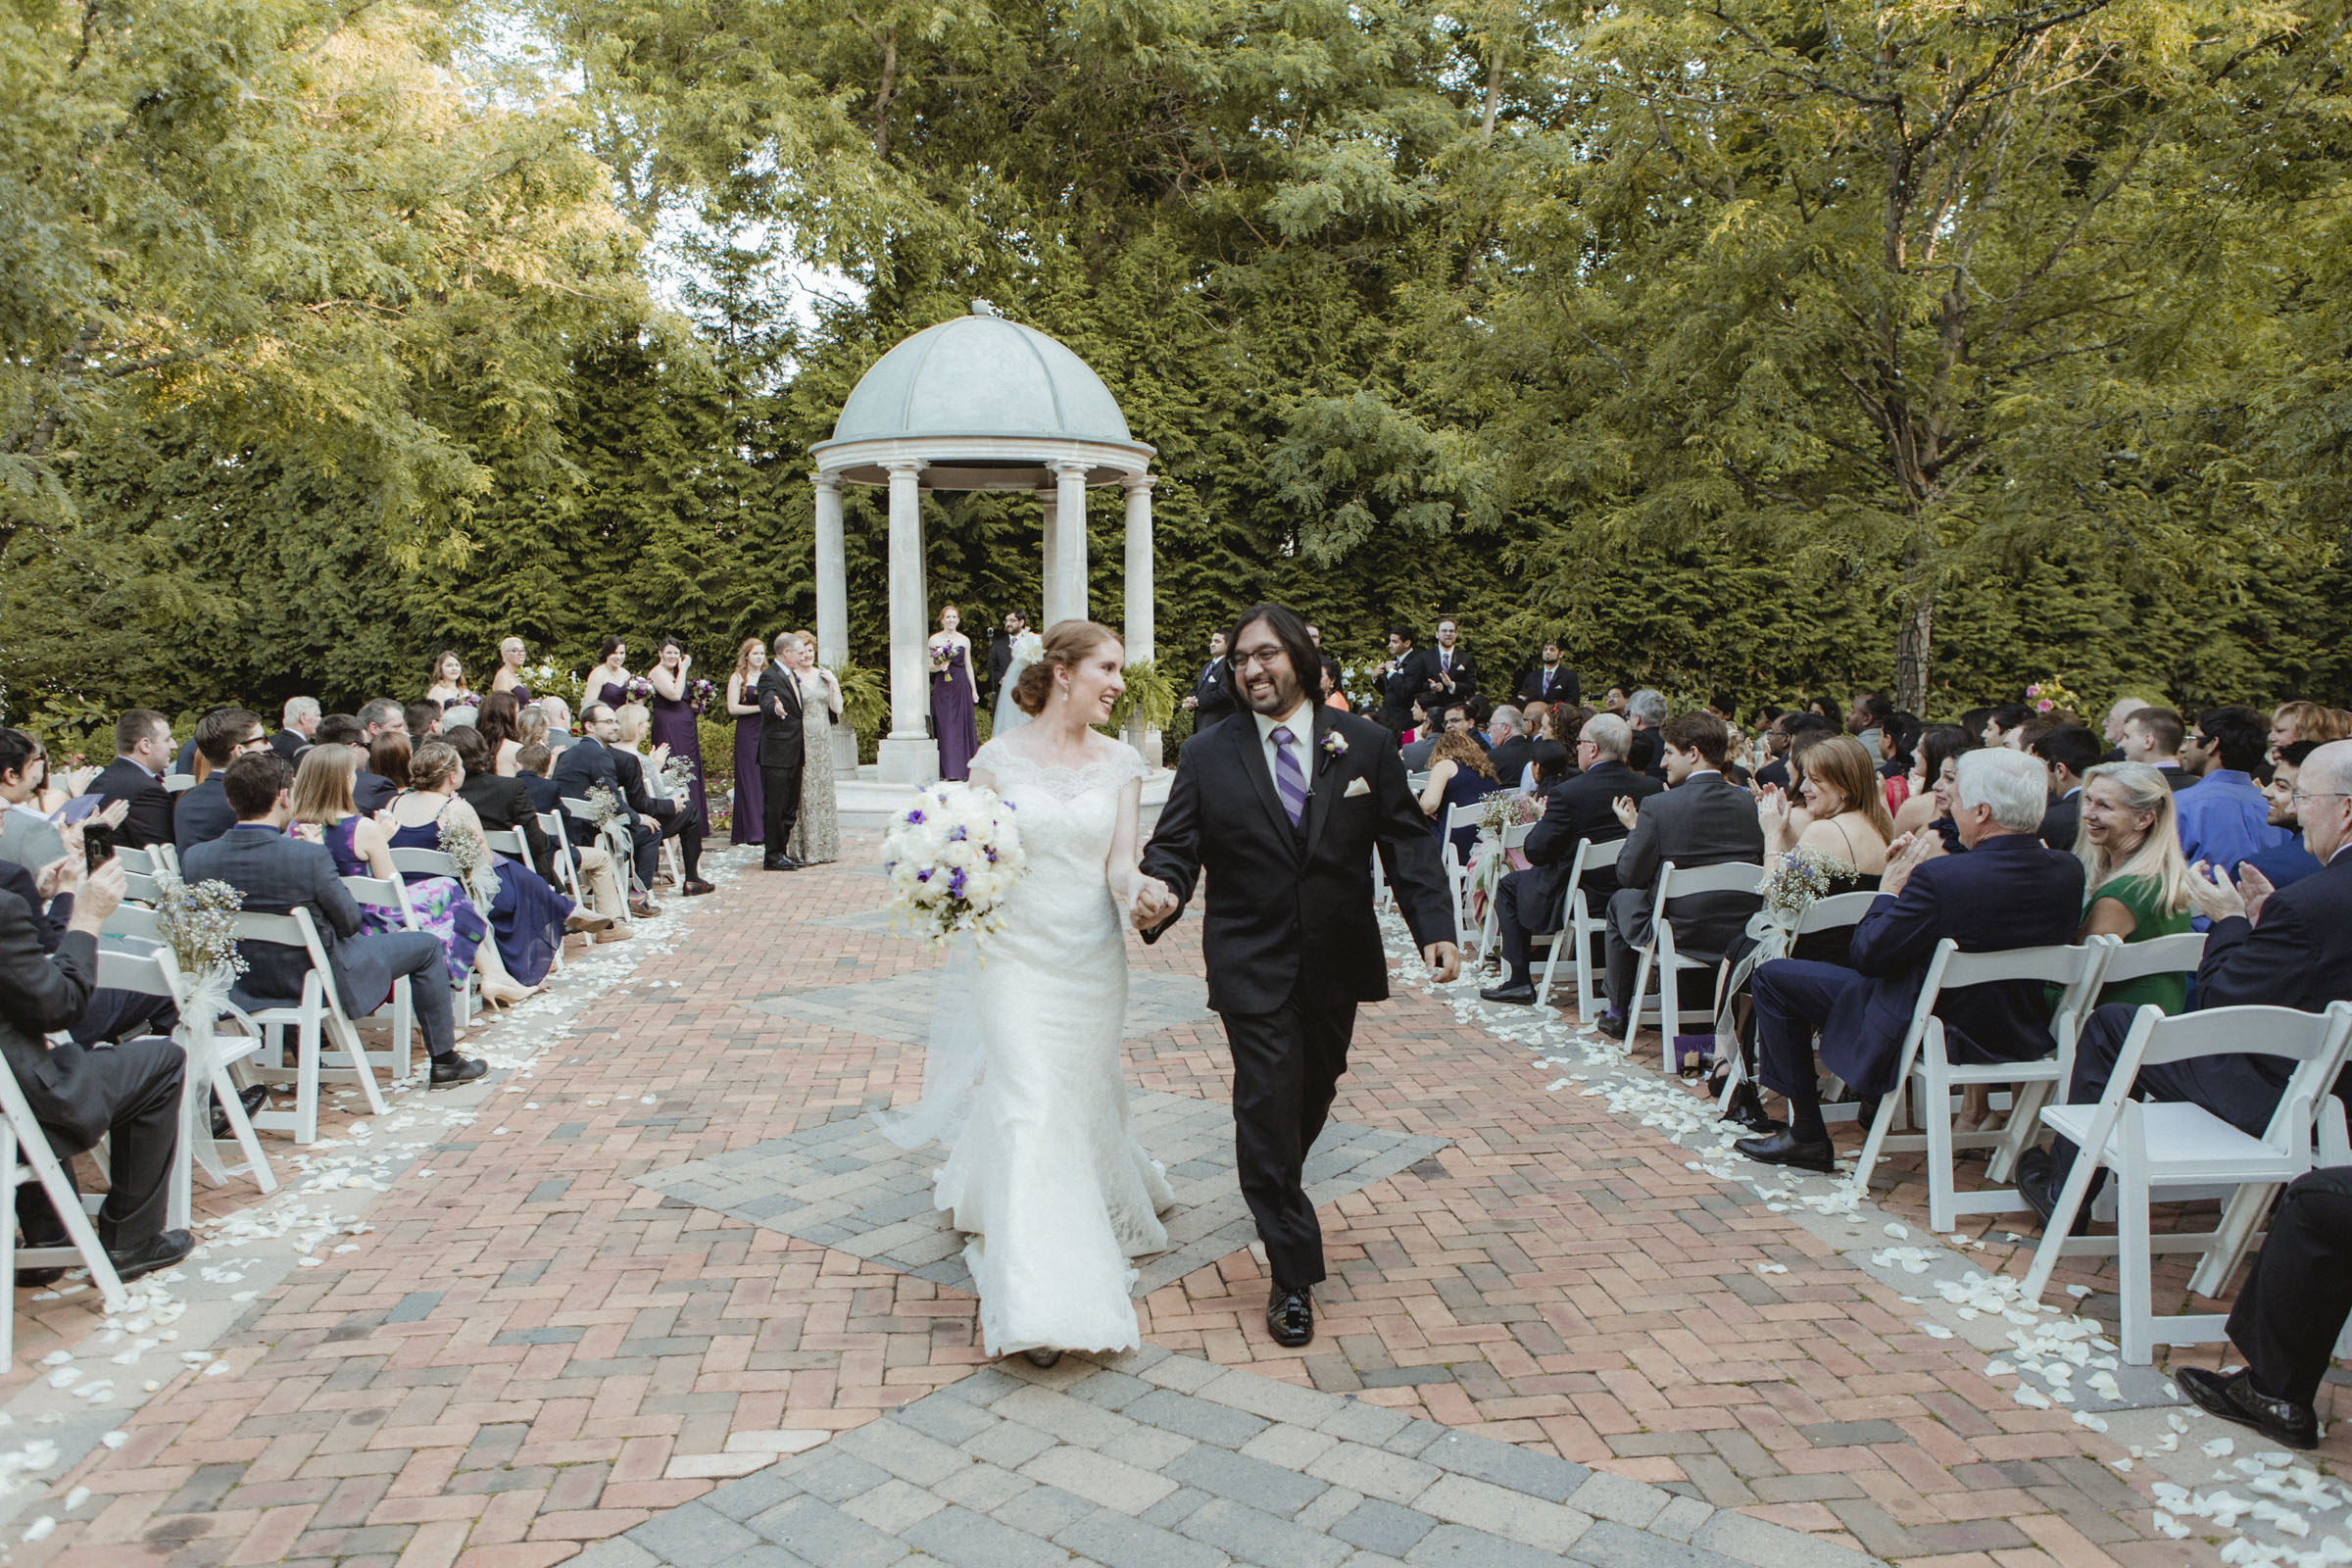 Couple smiles at each other as they come back down the aisle - Estate at Florentine Gardens wedding - Hudson Valley Wedding - Kelsey & Anish's wedding - Amy Sims Photography